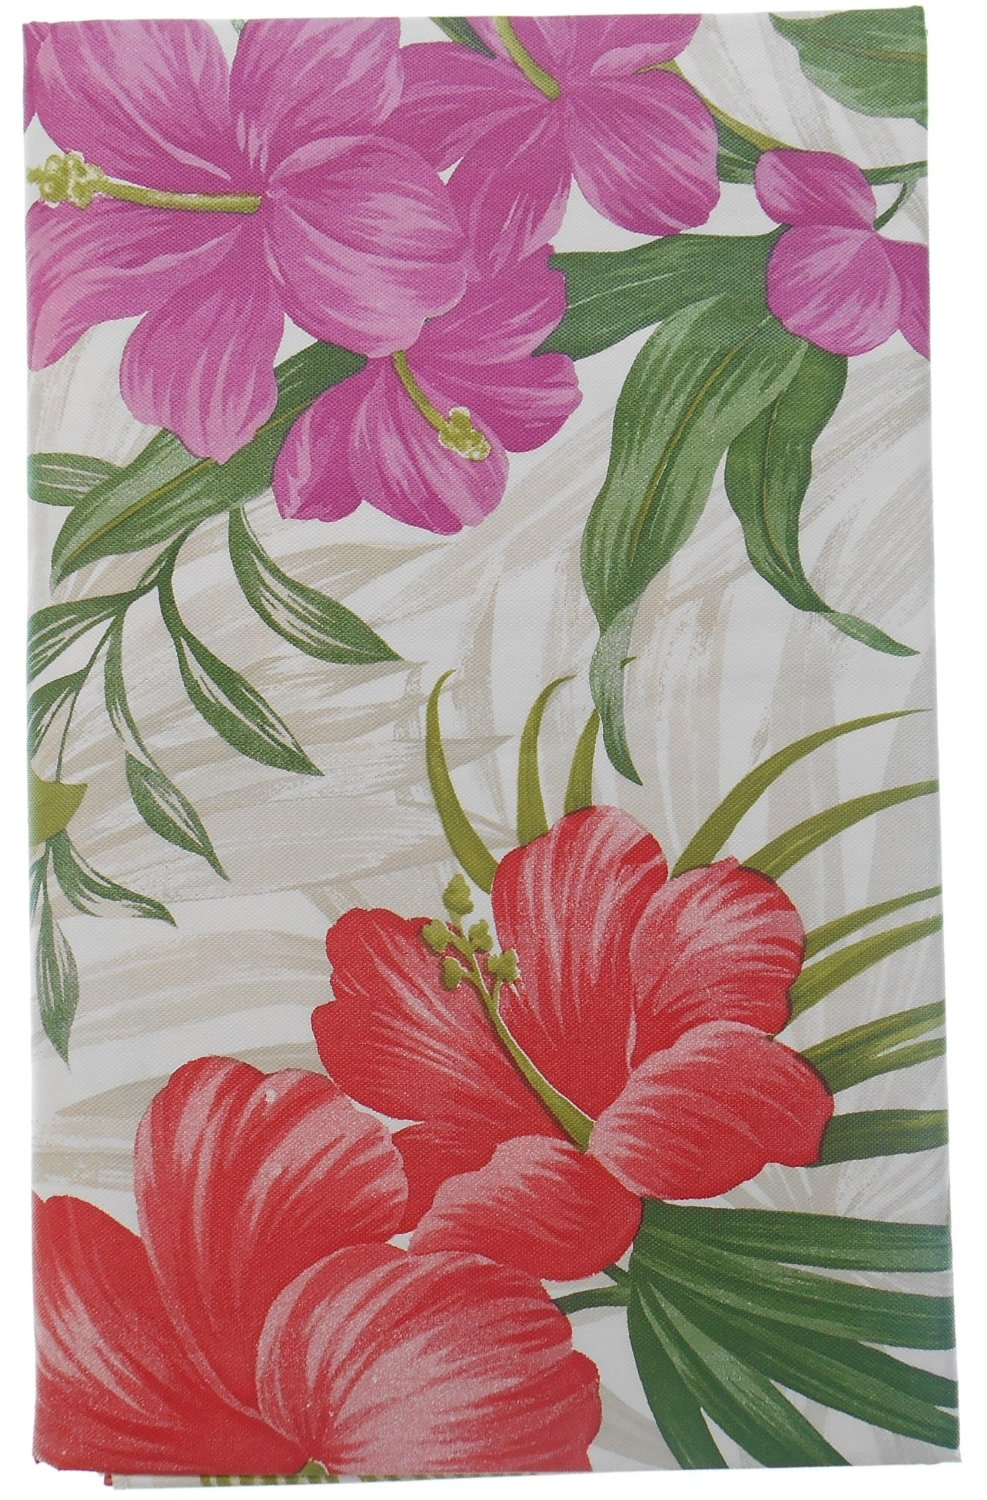 Tropical Red Pink Flowers Vinyl Flannel Back Tablecloth 52 x 70 ...